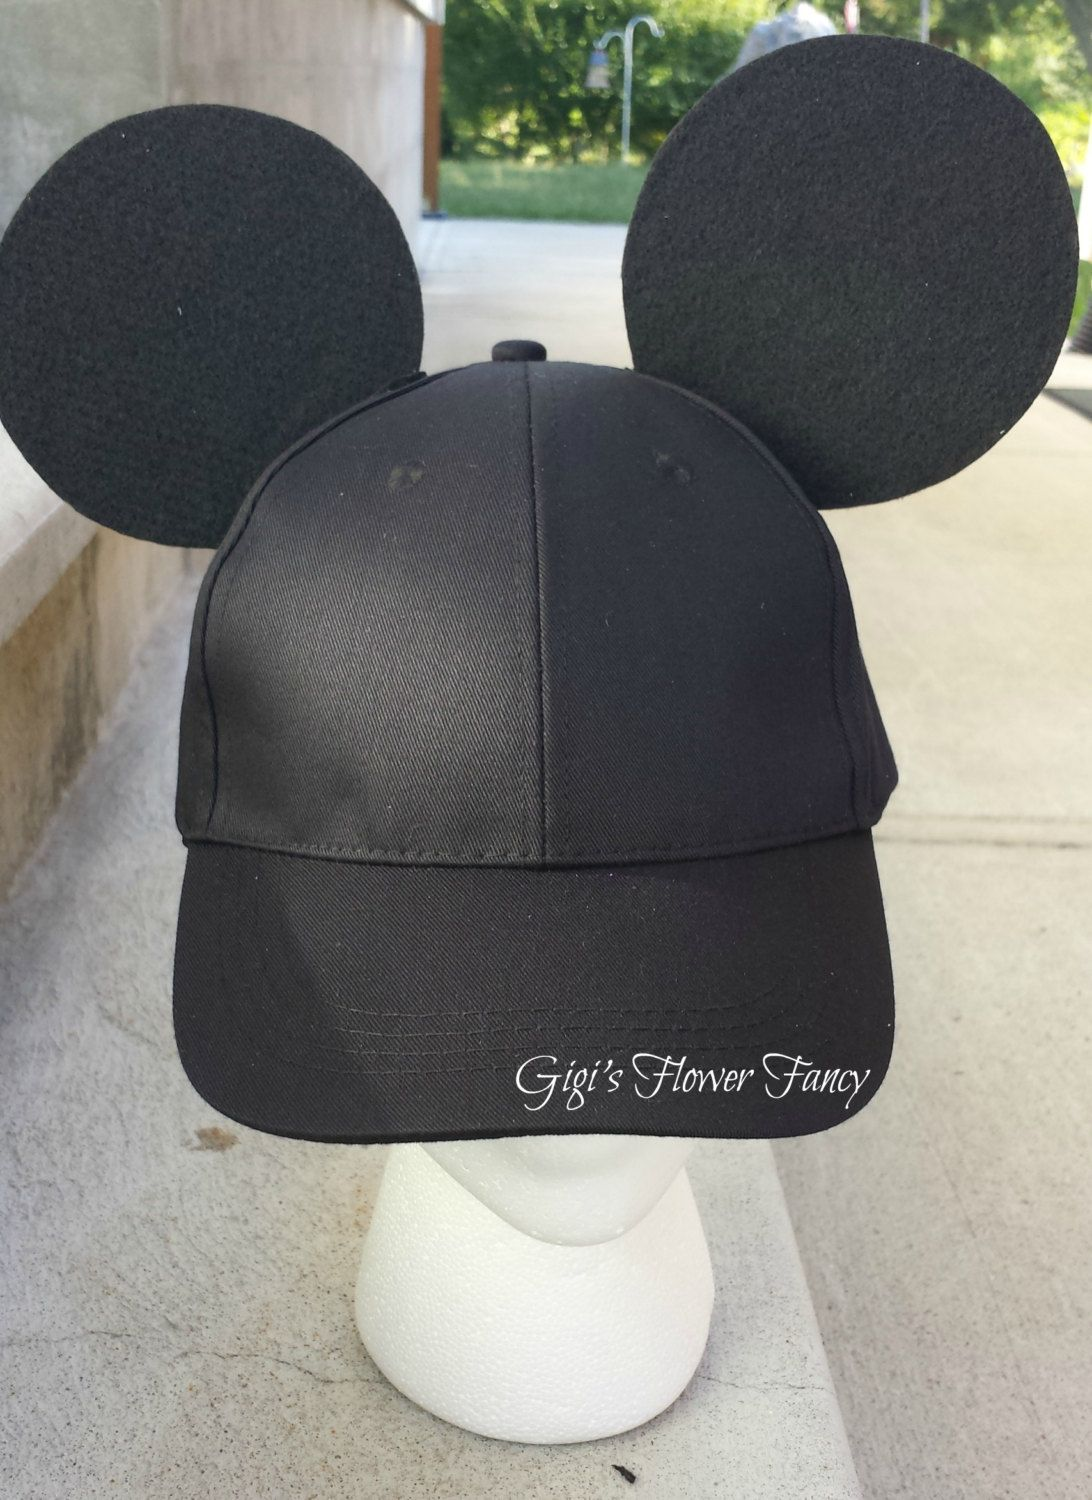 a83948d164a6c Mickey Mouse Inspired Ears - Black Baseball Cap for guys boys - Add name  optional. Great to pair with Minnie Mouse Inspired ears in shop by  GigisFlowerFancy ...